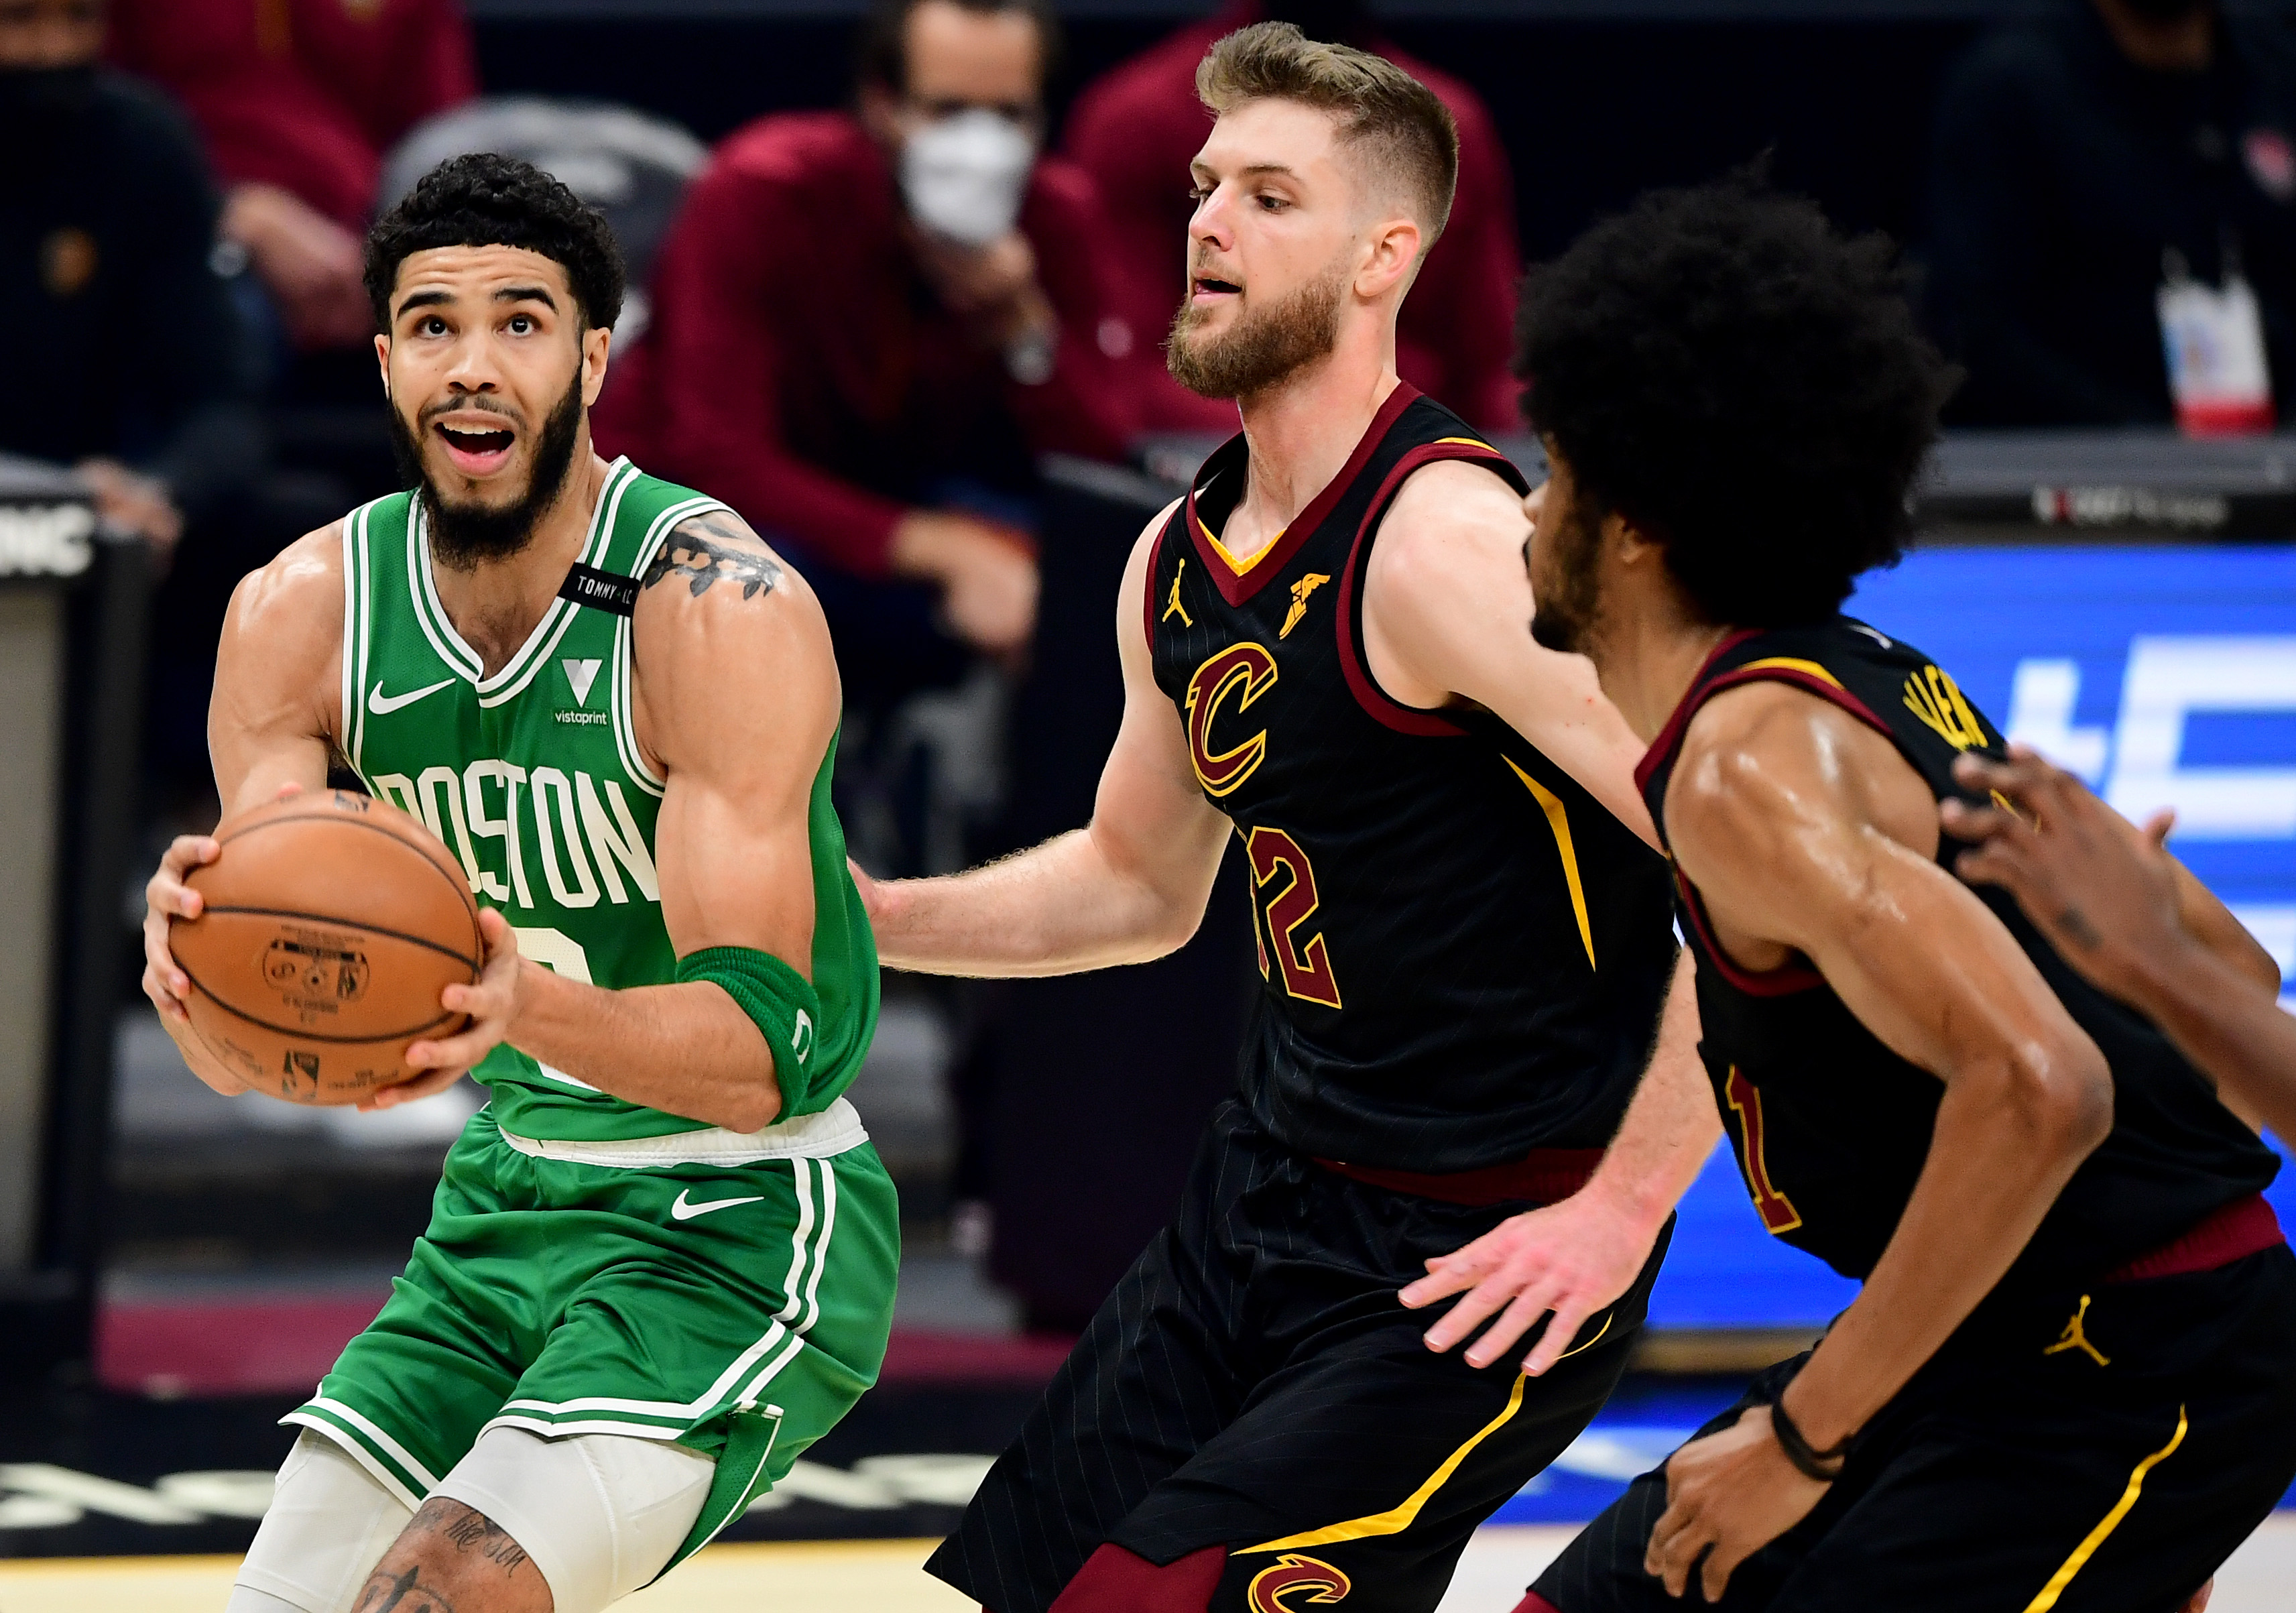 Jayson Tatum Has Been on Fire, but Is He Enough to Give the Boston Celtics Hope?